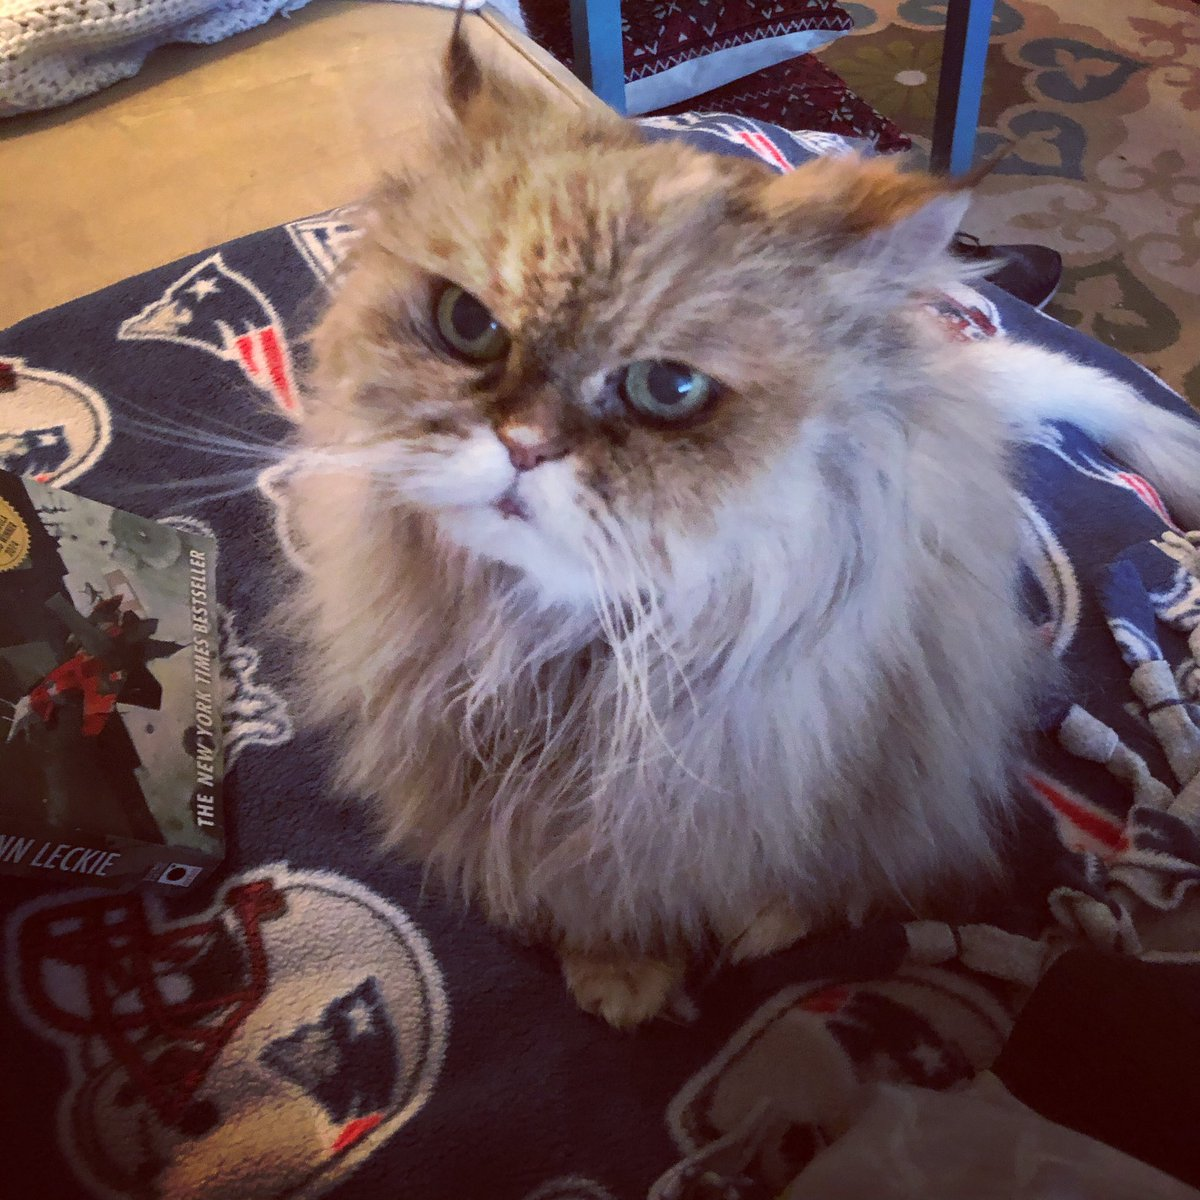 There's some disagreement in this @Patriots house about whether or not @TomBrady is a traitor (I say YES hubby says NO). Pretty sure she agrees with ME! #NFLPlayoffs #SuperBowl #TomBrady #TampaBaybucs